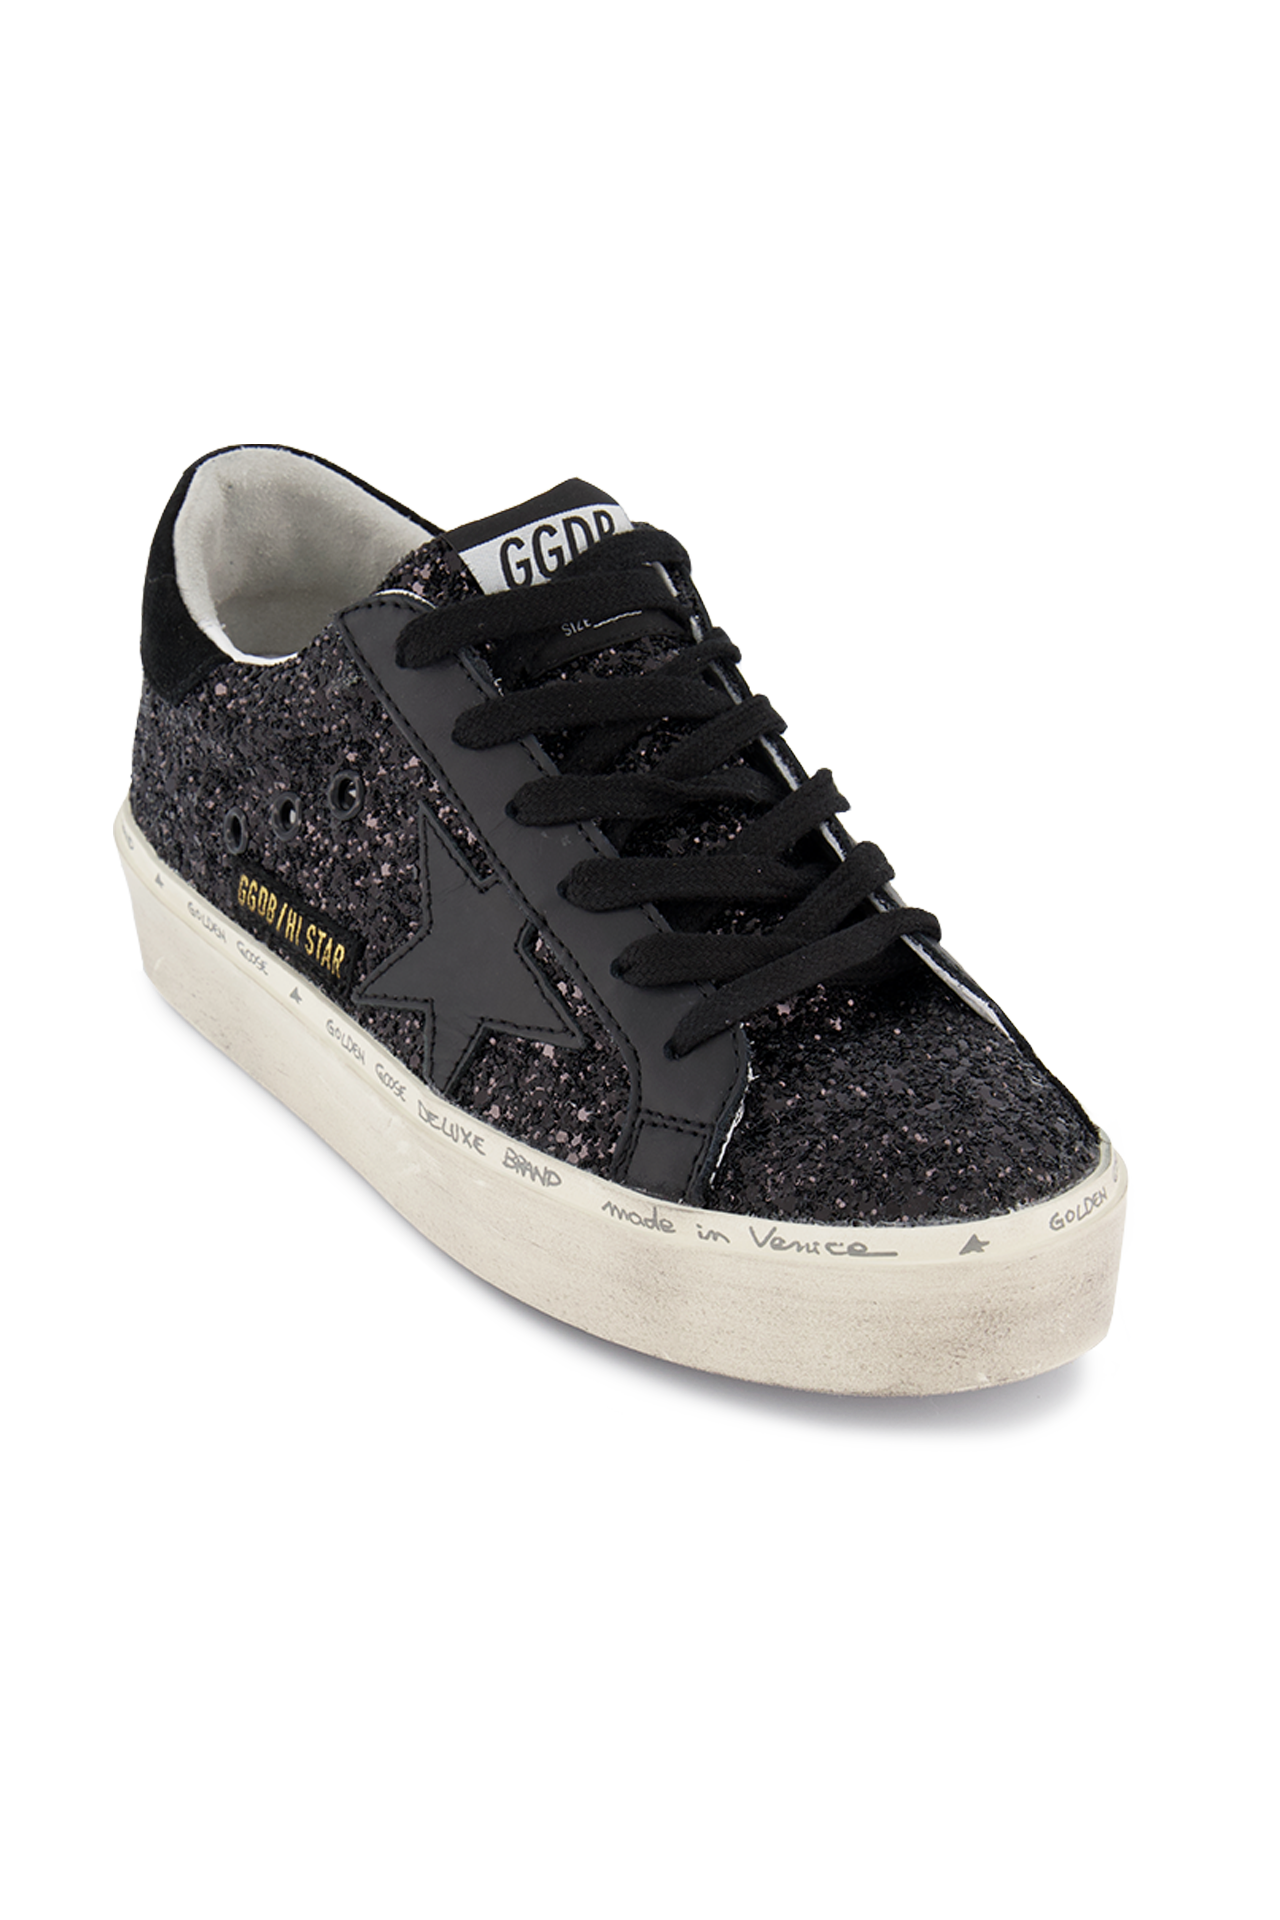 Lace Detail Image of Golden Goose Hi Star Sneaker Black Glitter